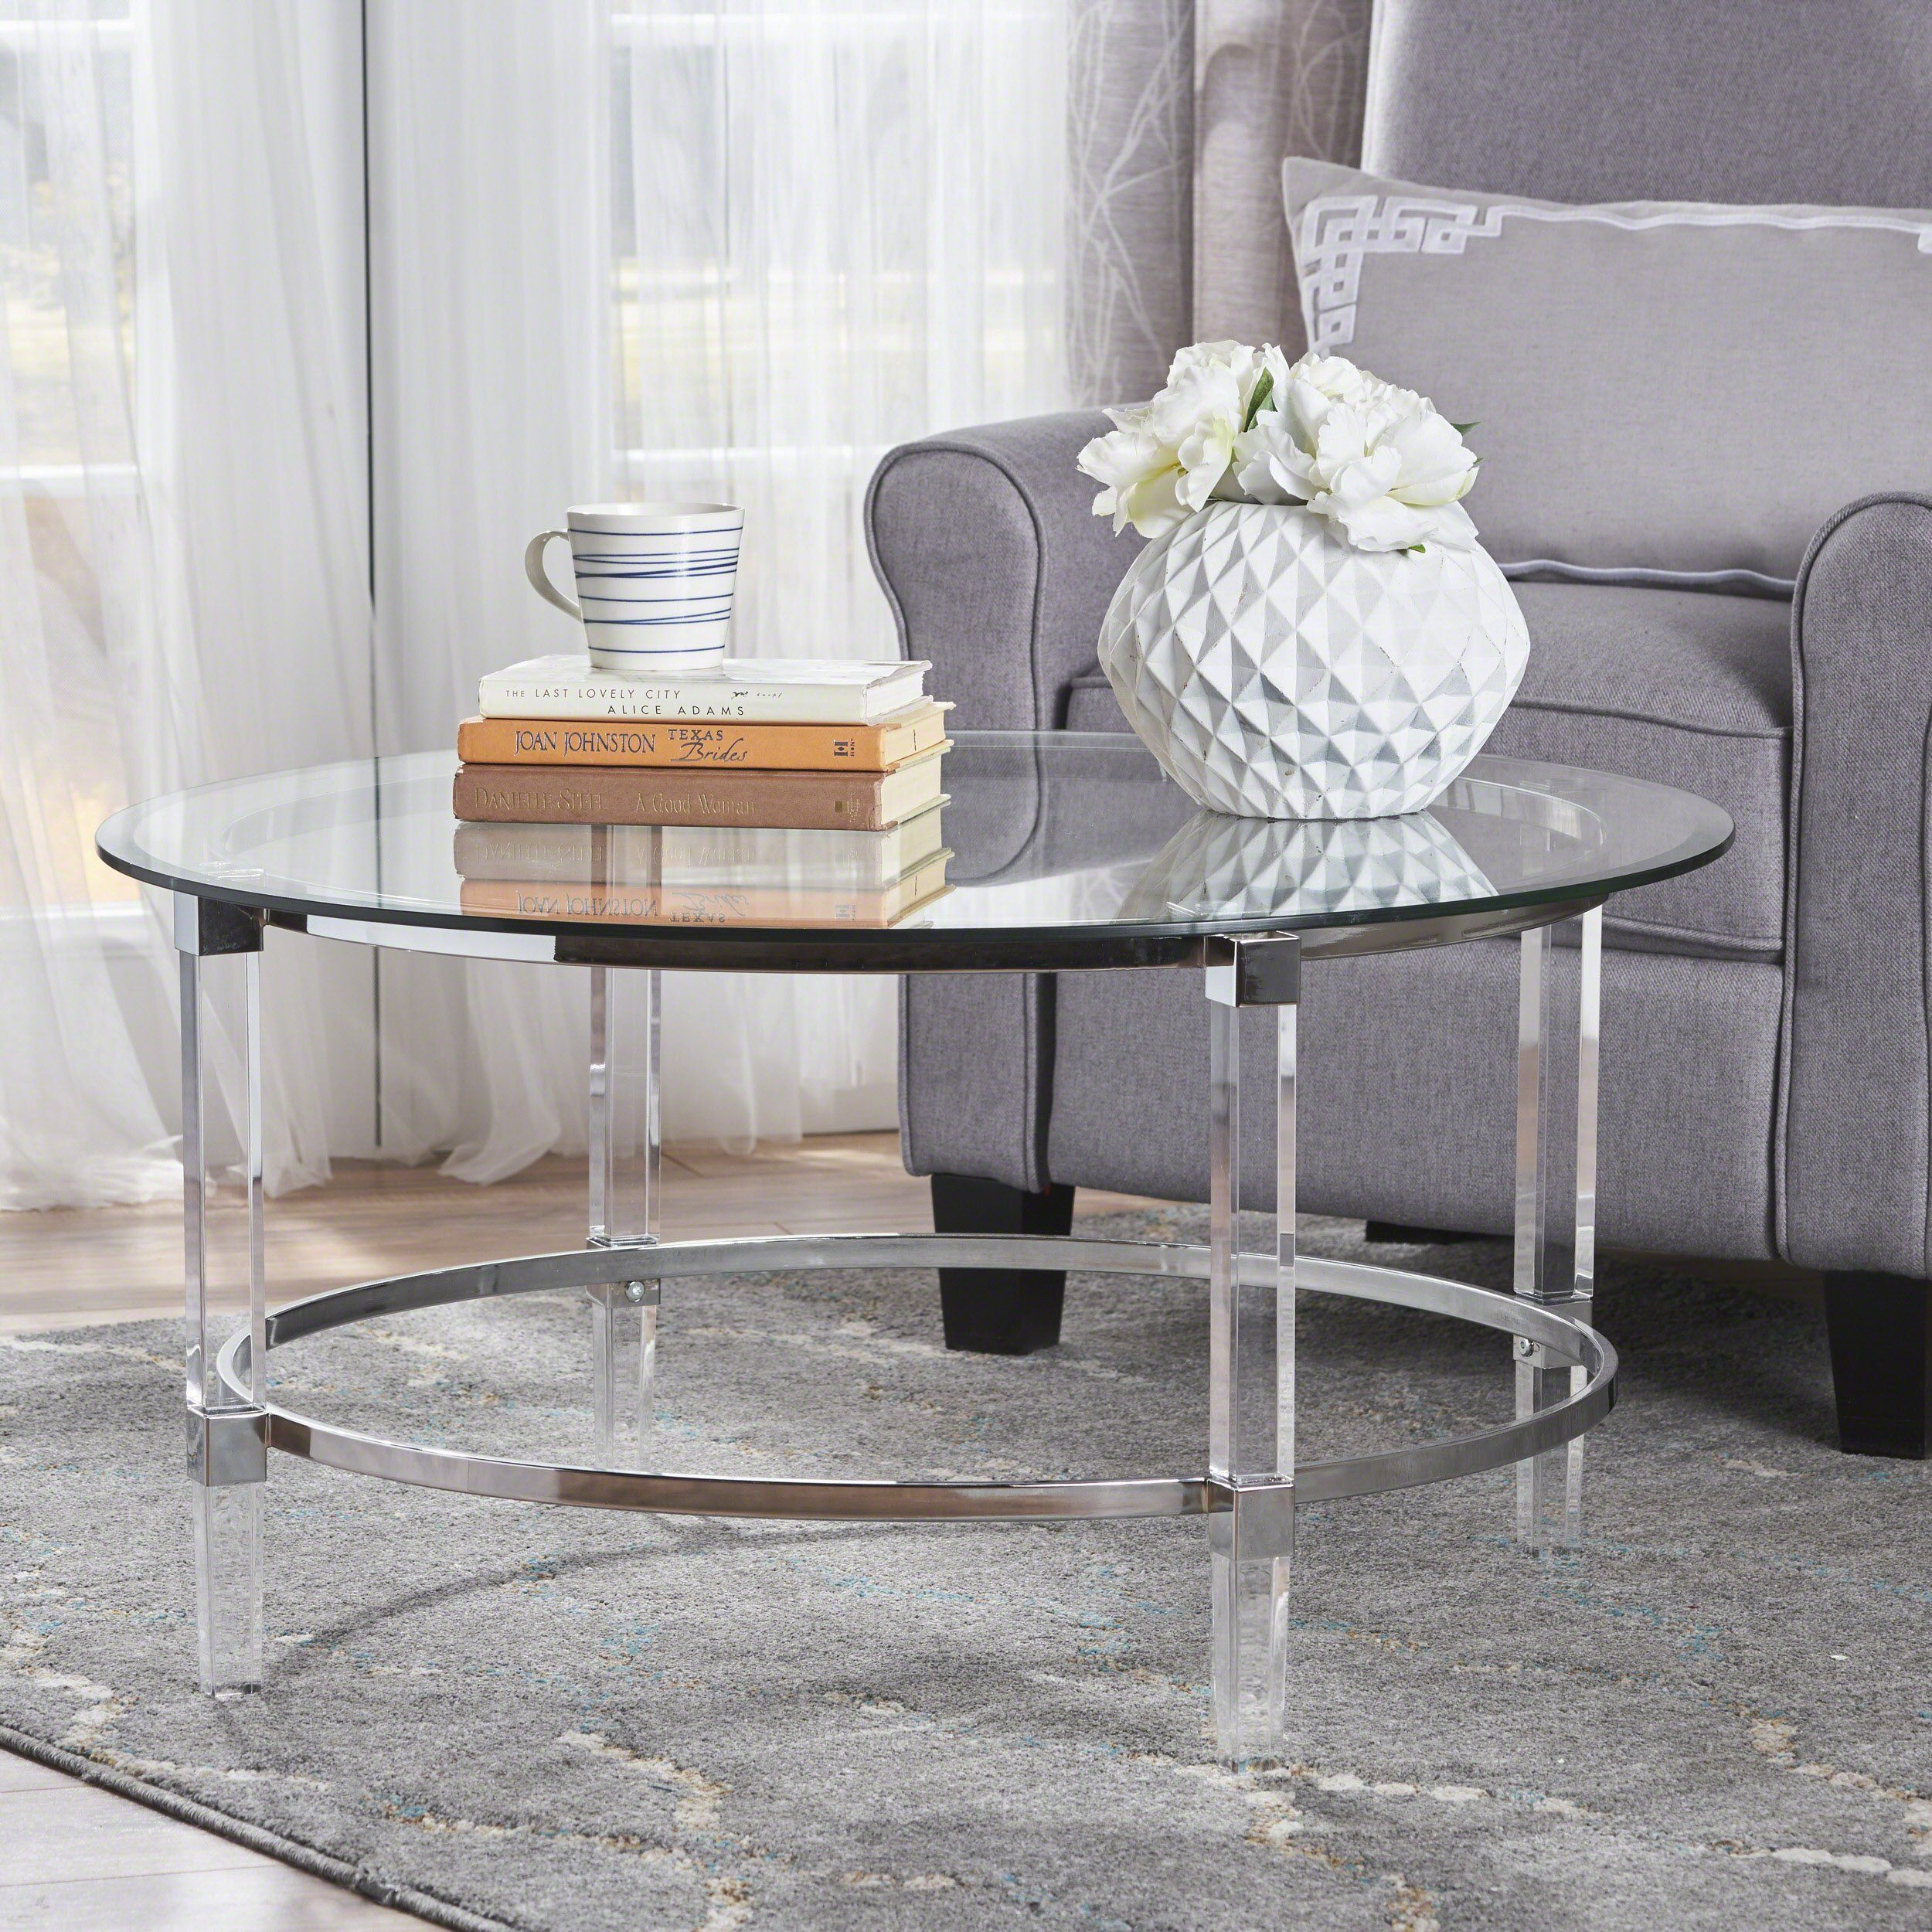 Lynn Modern Round Tempered Glass Coffee Table With Acrylic And Iron Accents Coffee Table Round Coffee Table Modern Round Glass Coffee Table [ 2500 x 2500 Pixel ]